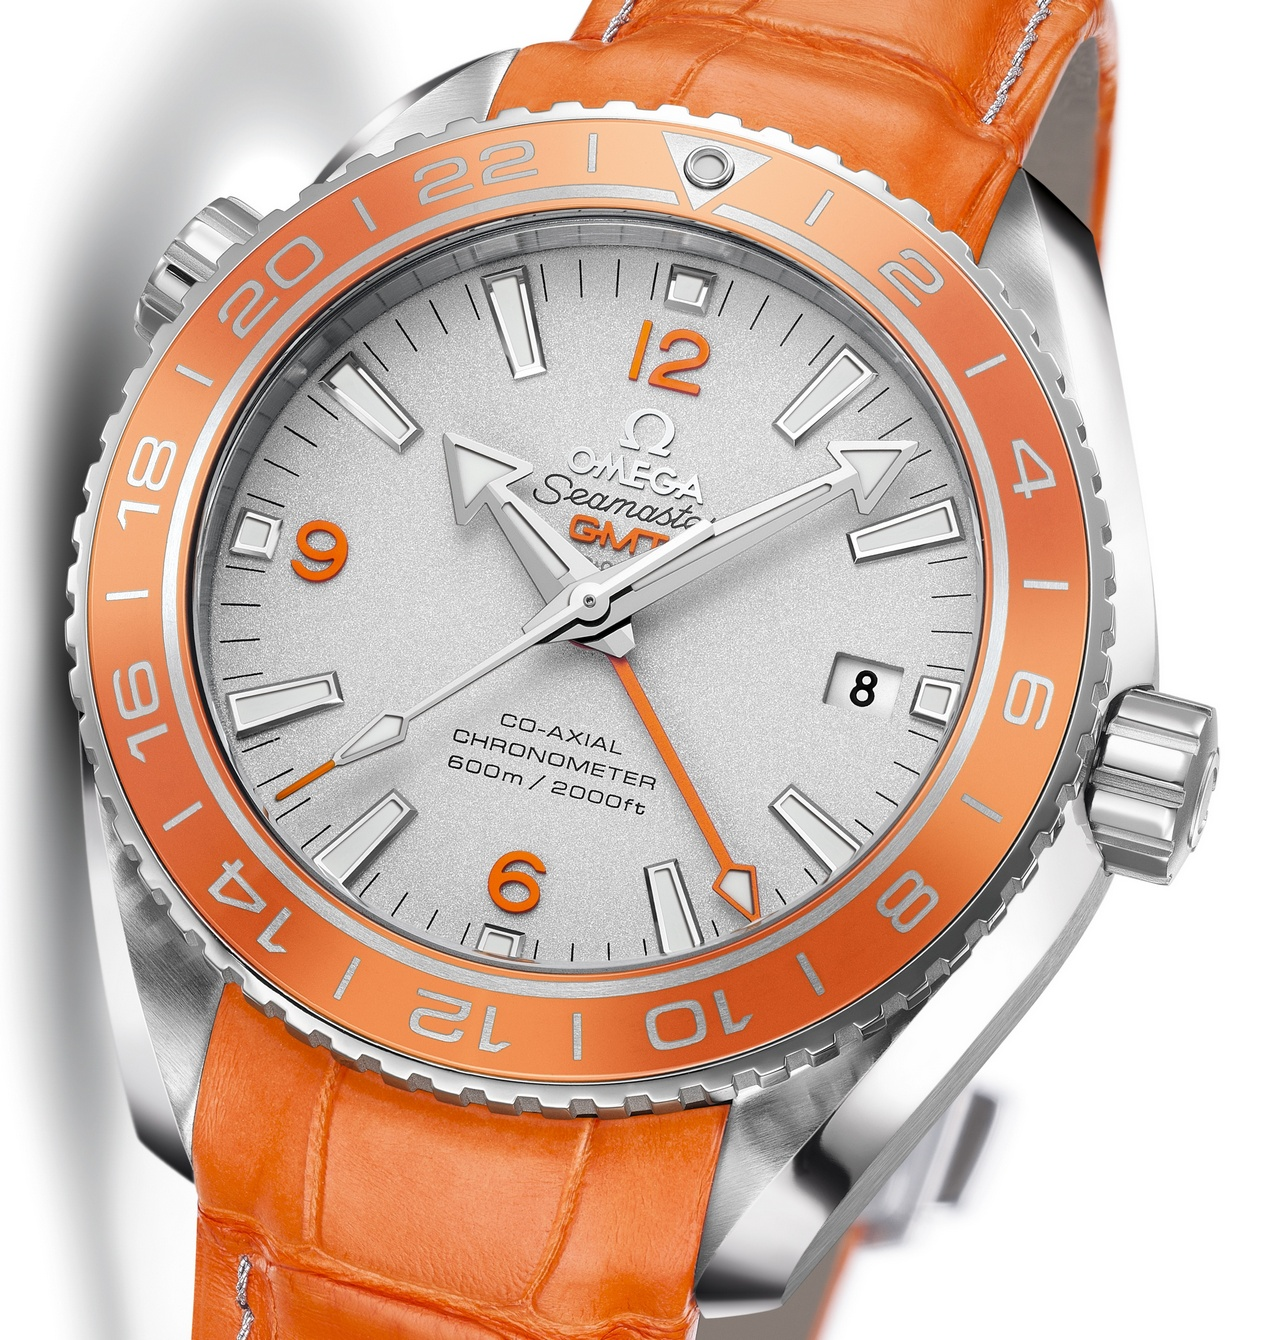 omega-seamaster-planet-ocean-orange-ceramic-prezzo-price_0-100_4